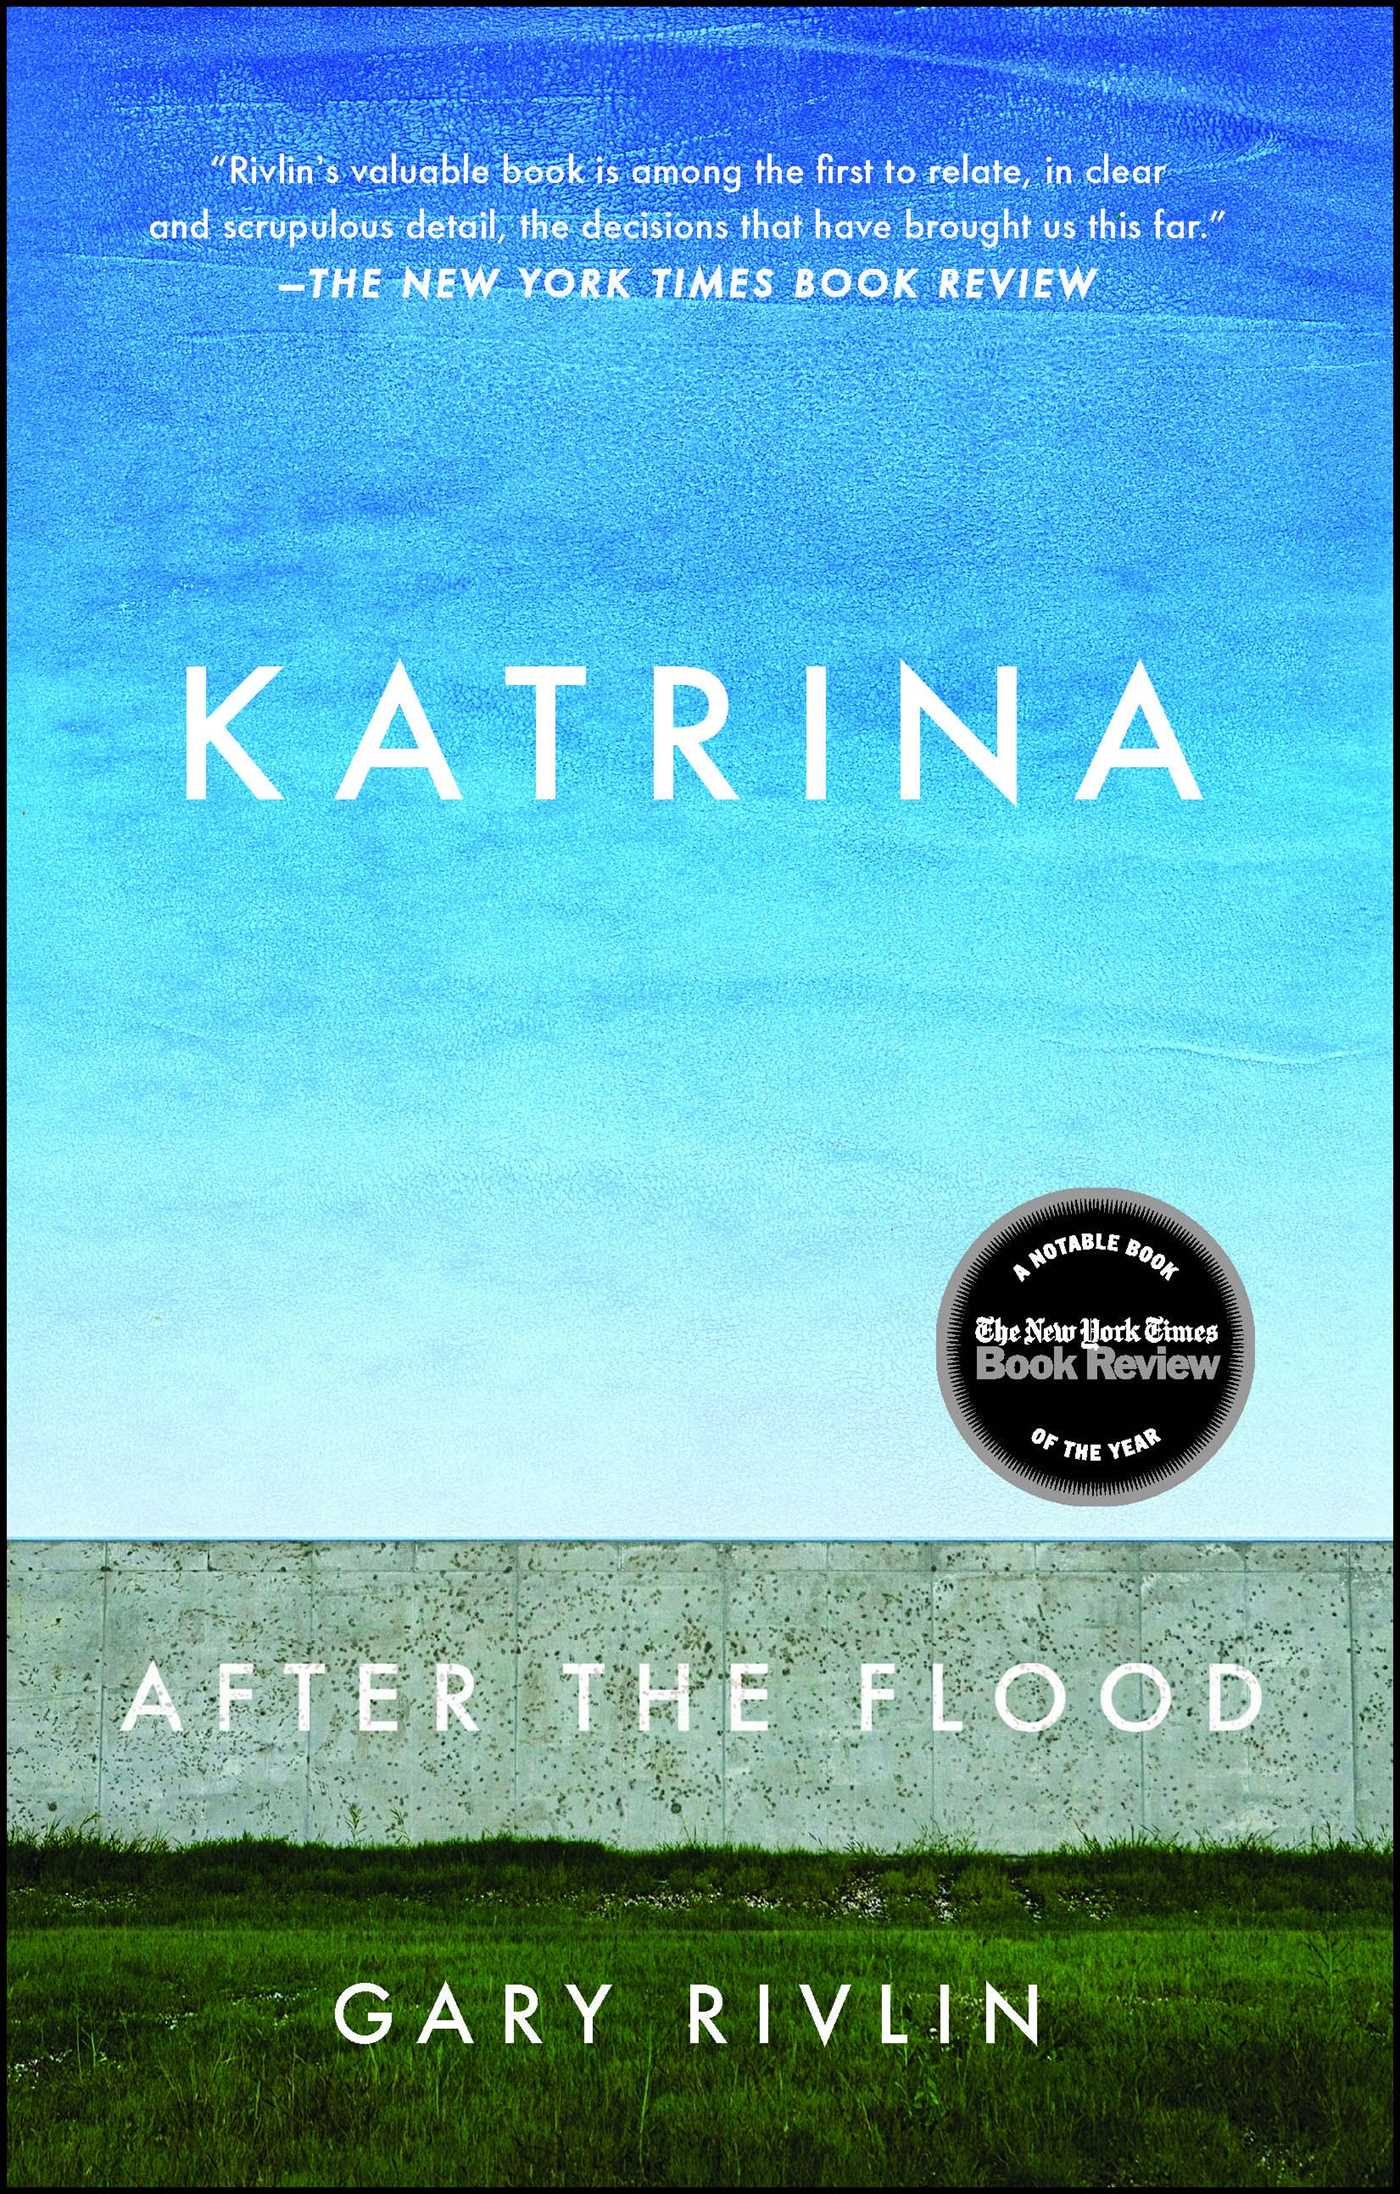 Katrina Book by Gary Rivlin ficial Publisher Page